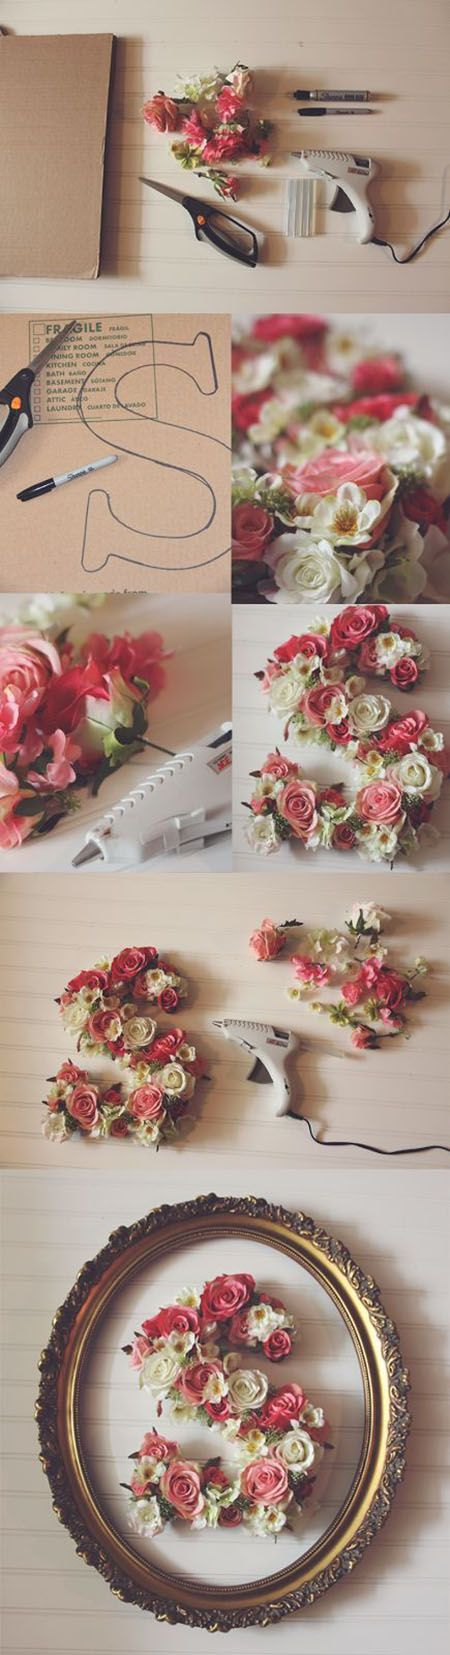 Diy Beautiful Flower Decor. //  LOVE THIS!  A